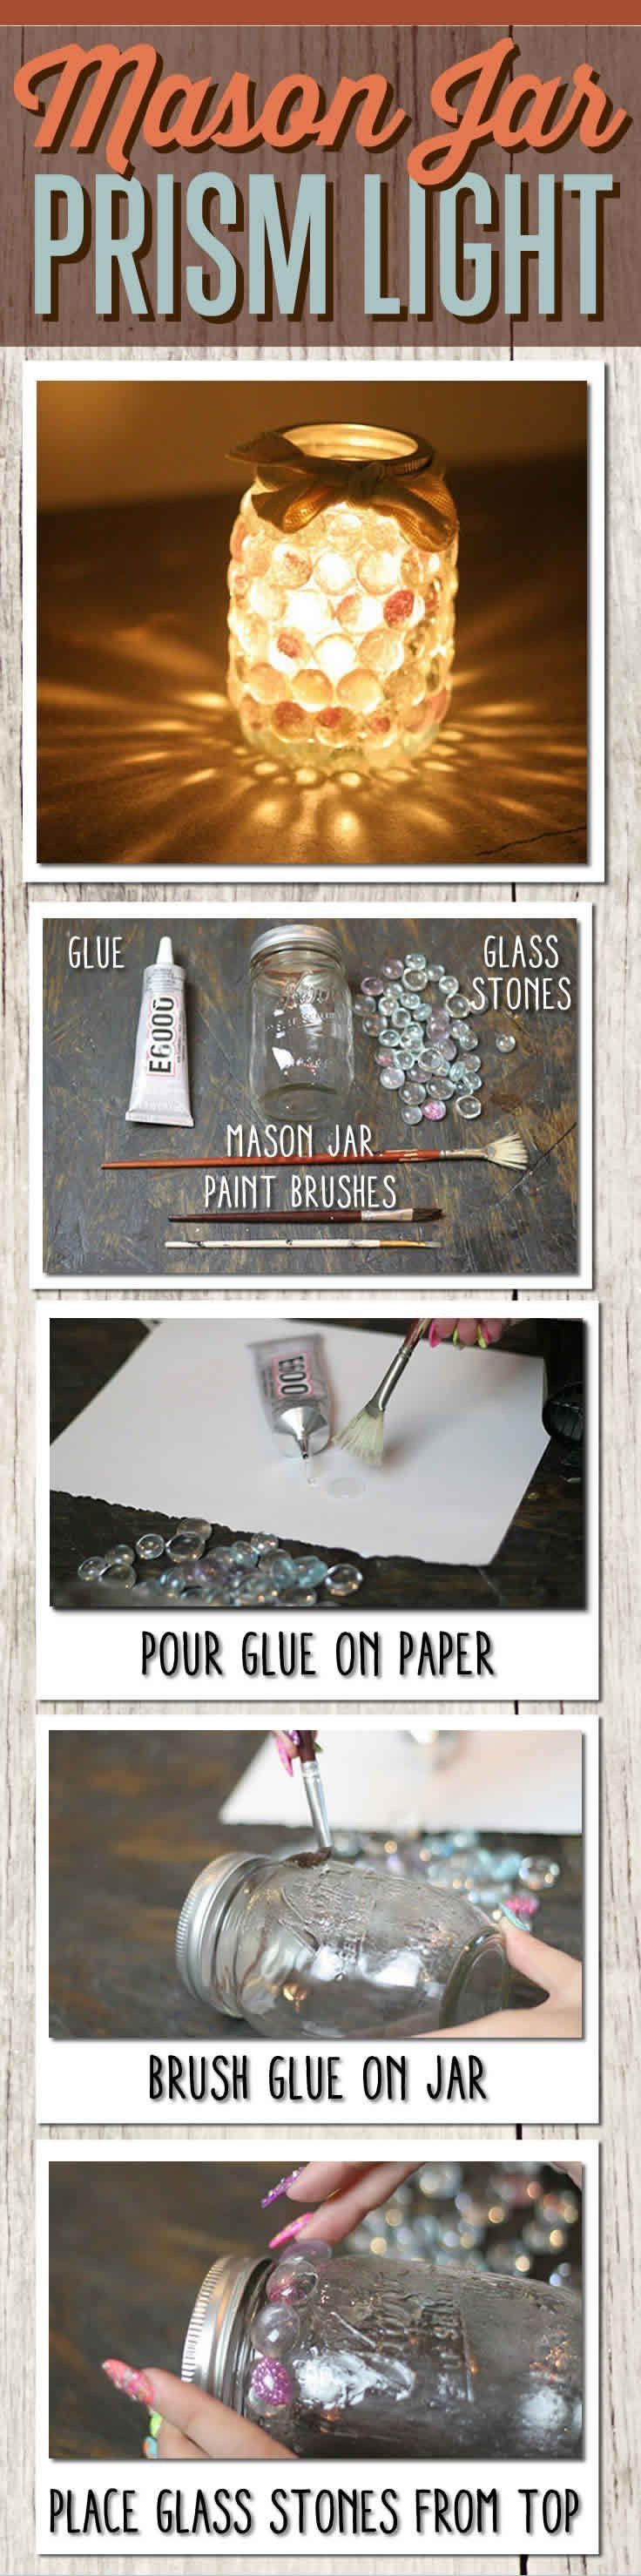 68 best diy and crafts images on pinterest crafts good ideas and